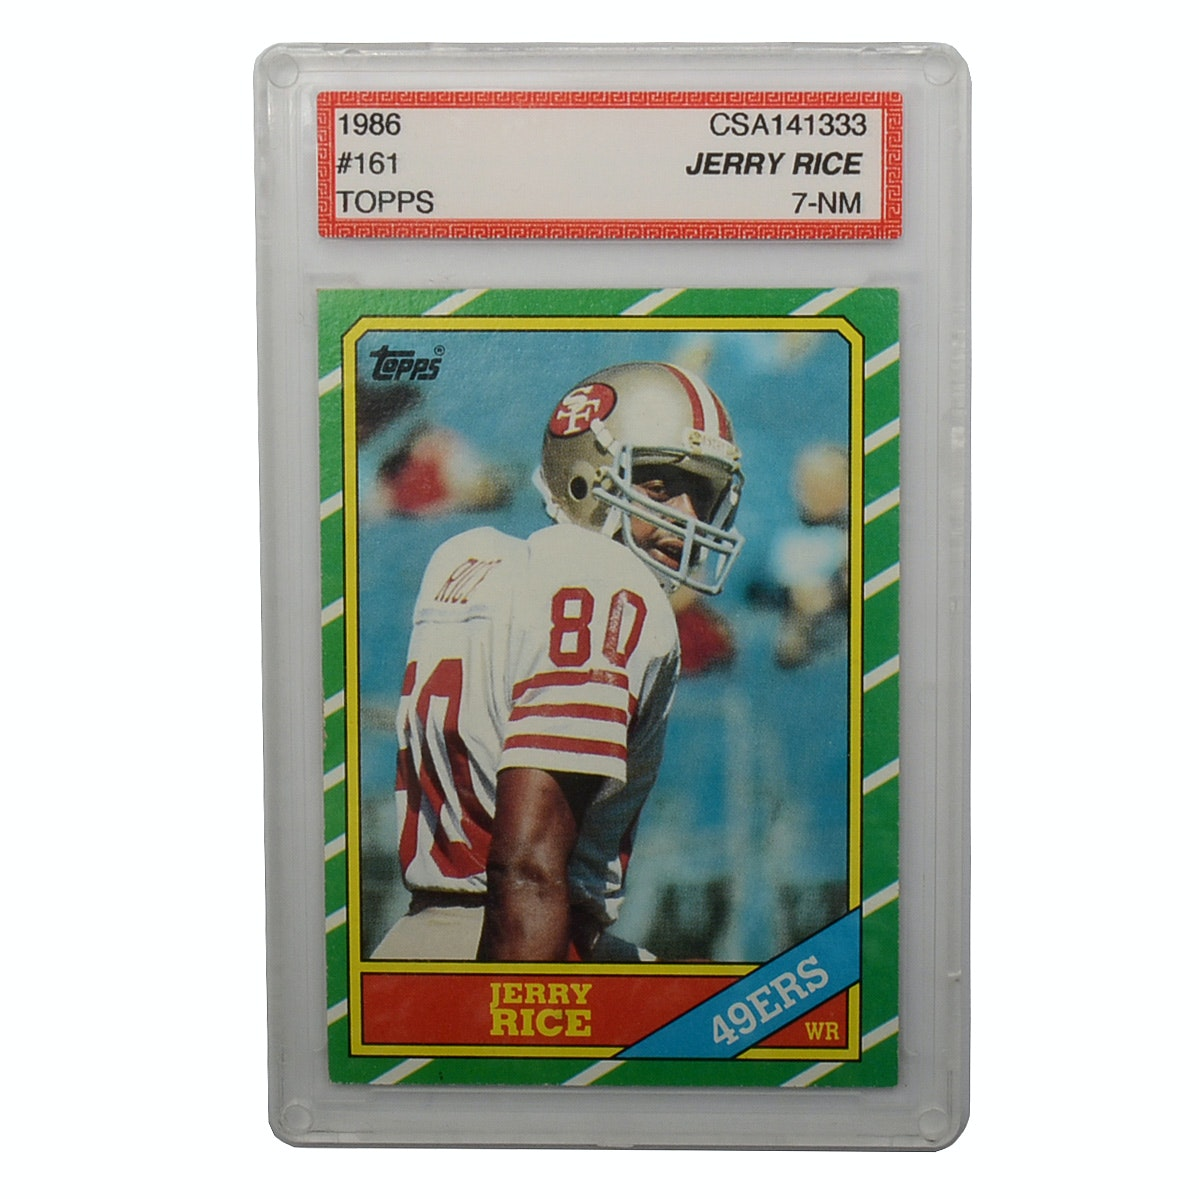 1986 Jerry Rice Professionally Graded Rookie Card